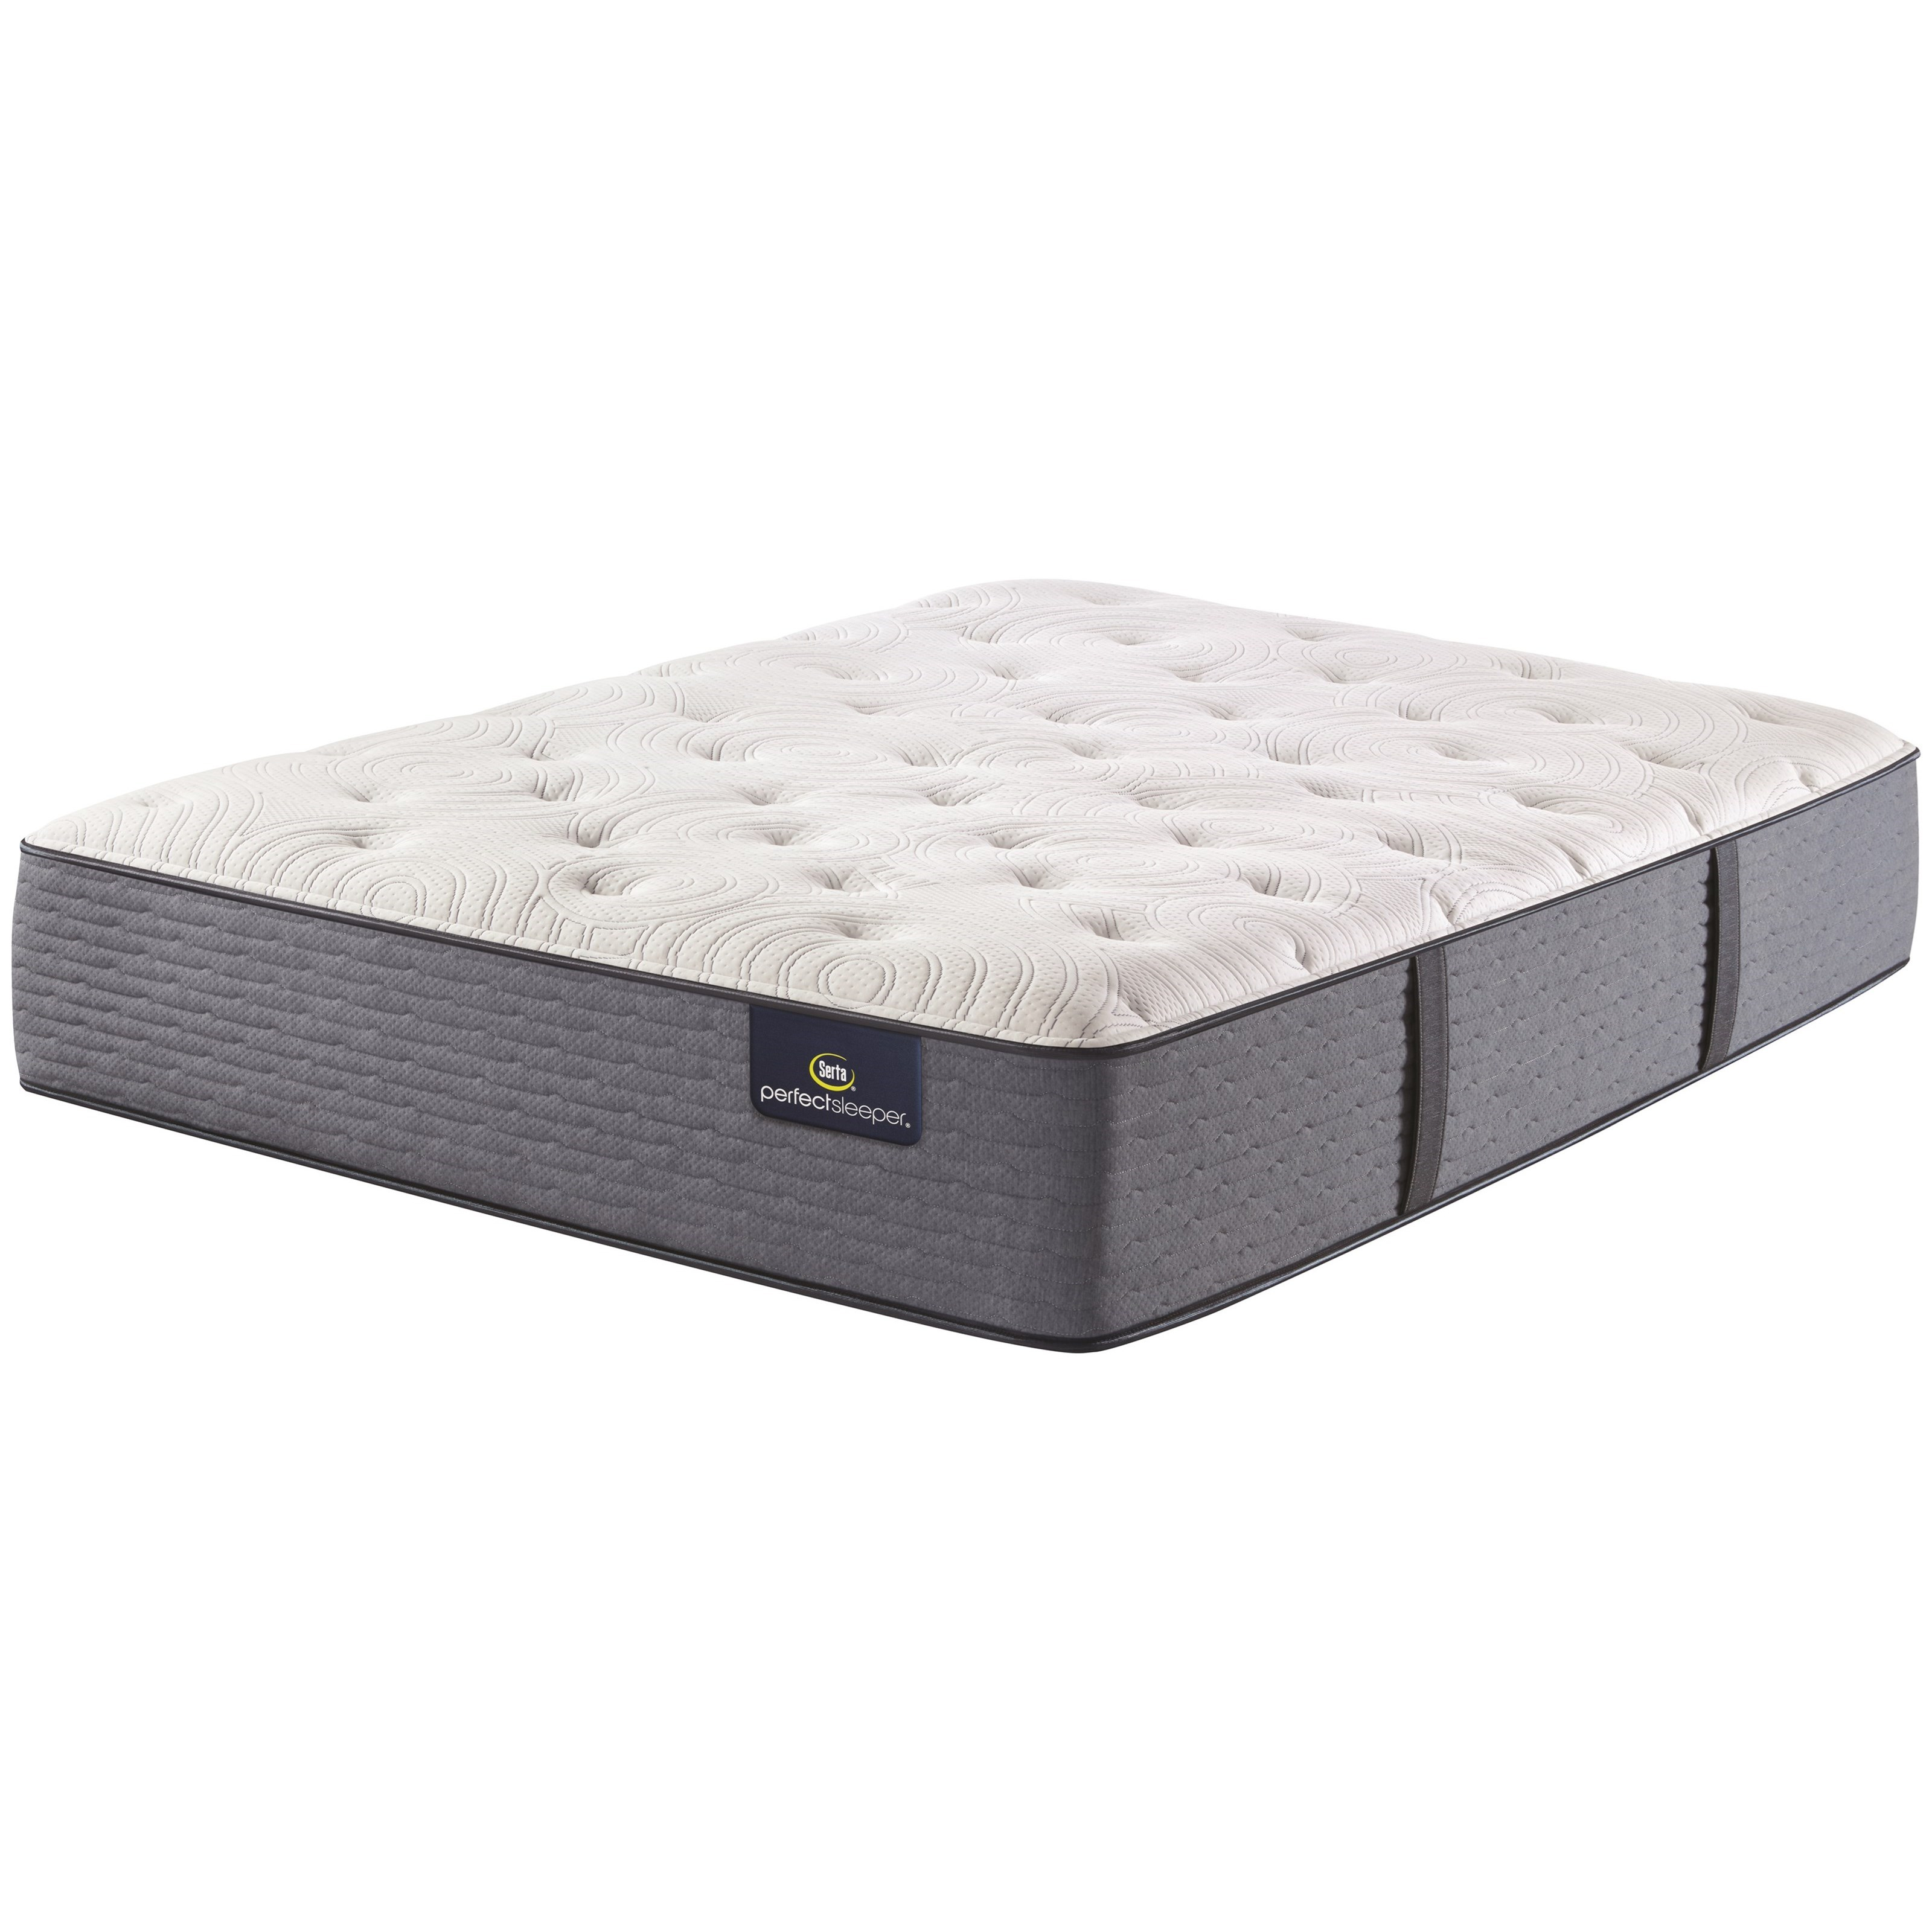 """Morning Excellence Plush Twin 14"""" Plush Mattress by Serta at Godby Home Furnishings"""